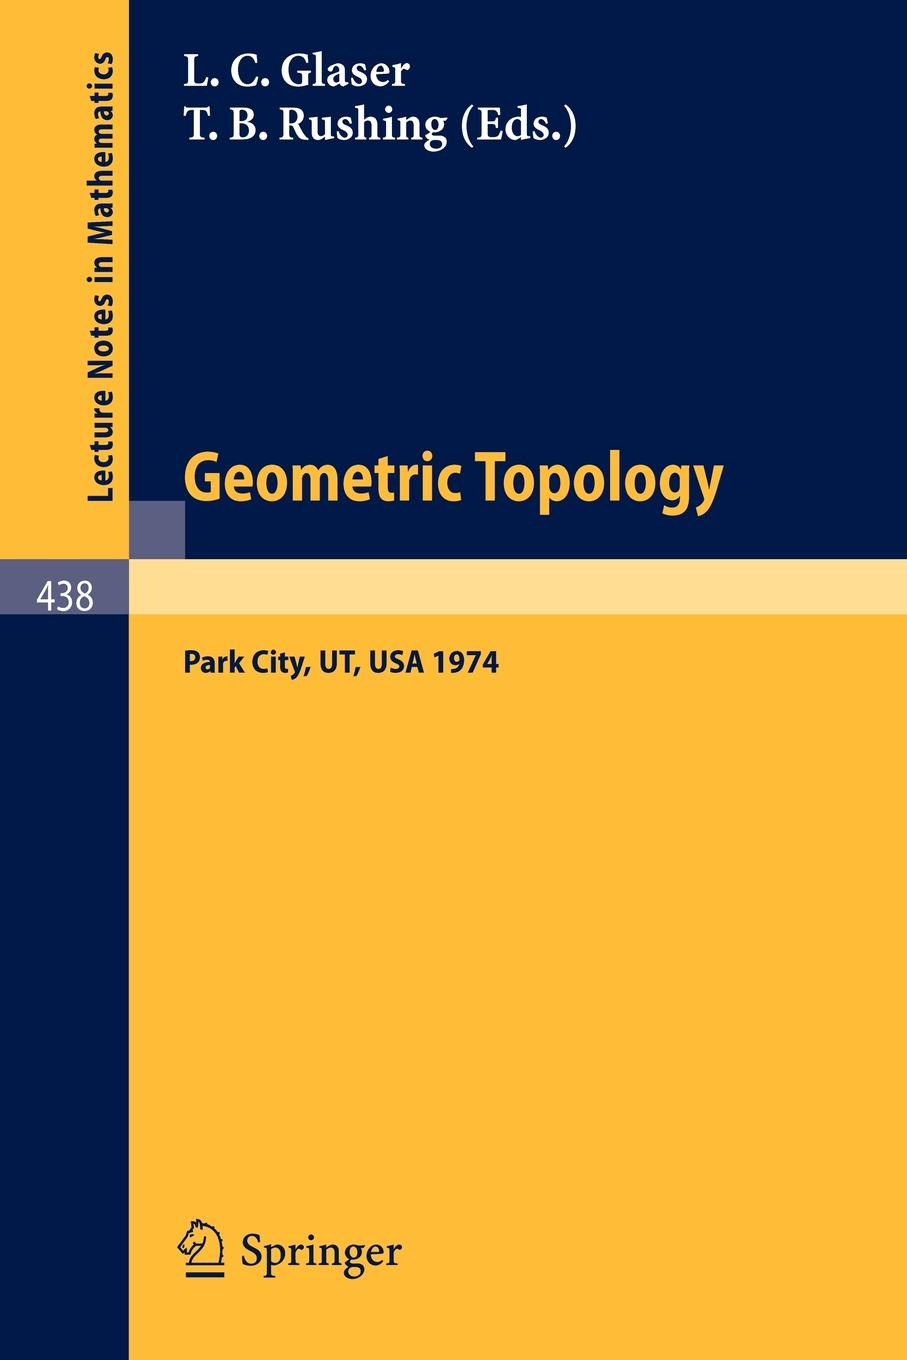 Geometric Topology. Proceedings of the Topology Conference held at Park City Utah, February 19-22, 1974